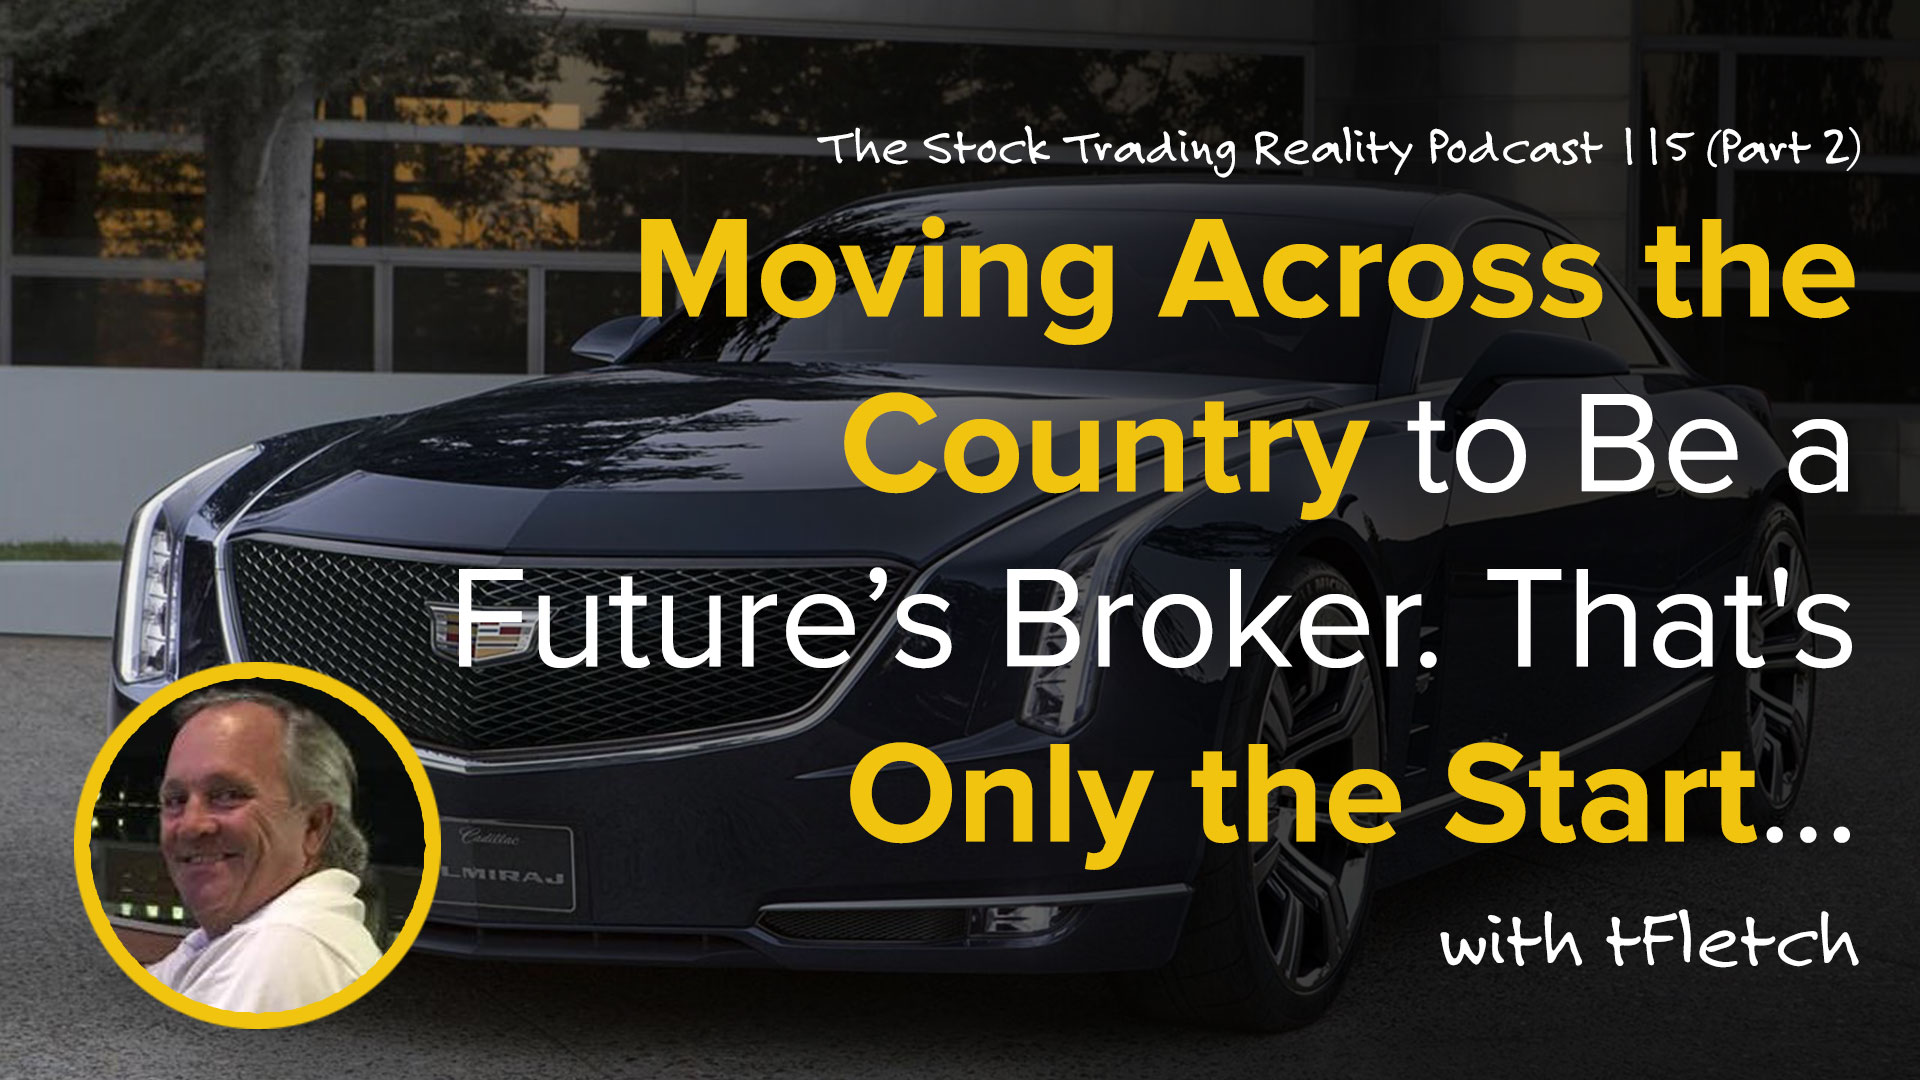 STR 115: Moving Across the Country to Be a Future's Broker. That's Only the Start... (Part 2)